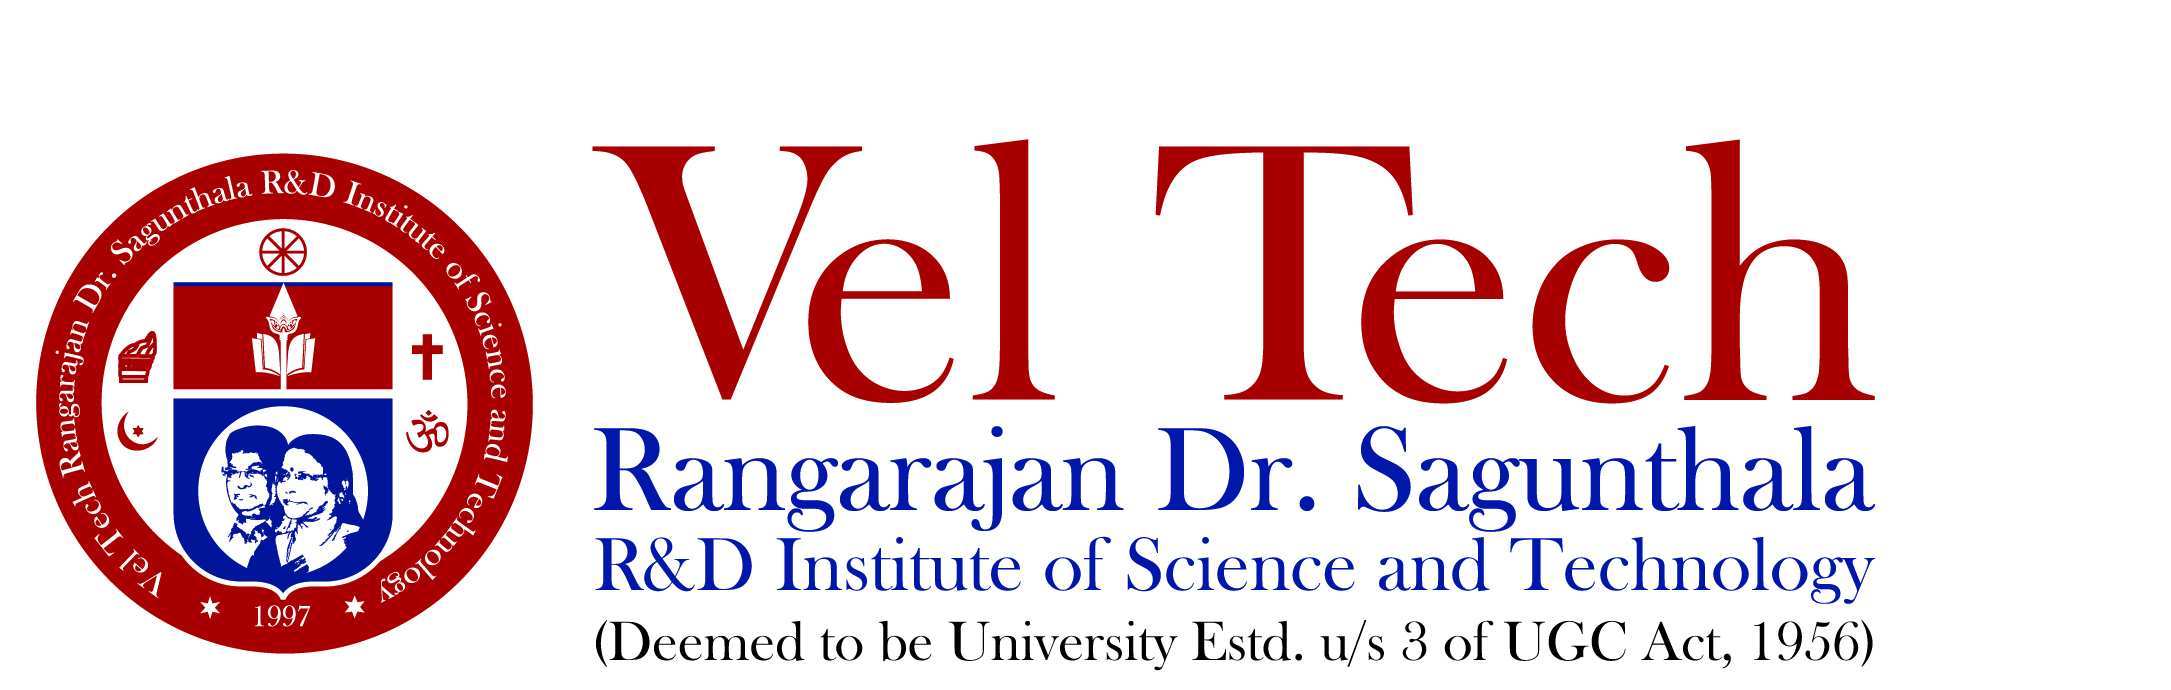 Vel Tech Rangarajan Dr.Sagunthala R&D Institute of Science and Technology